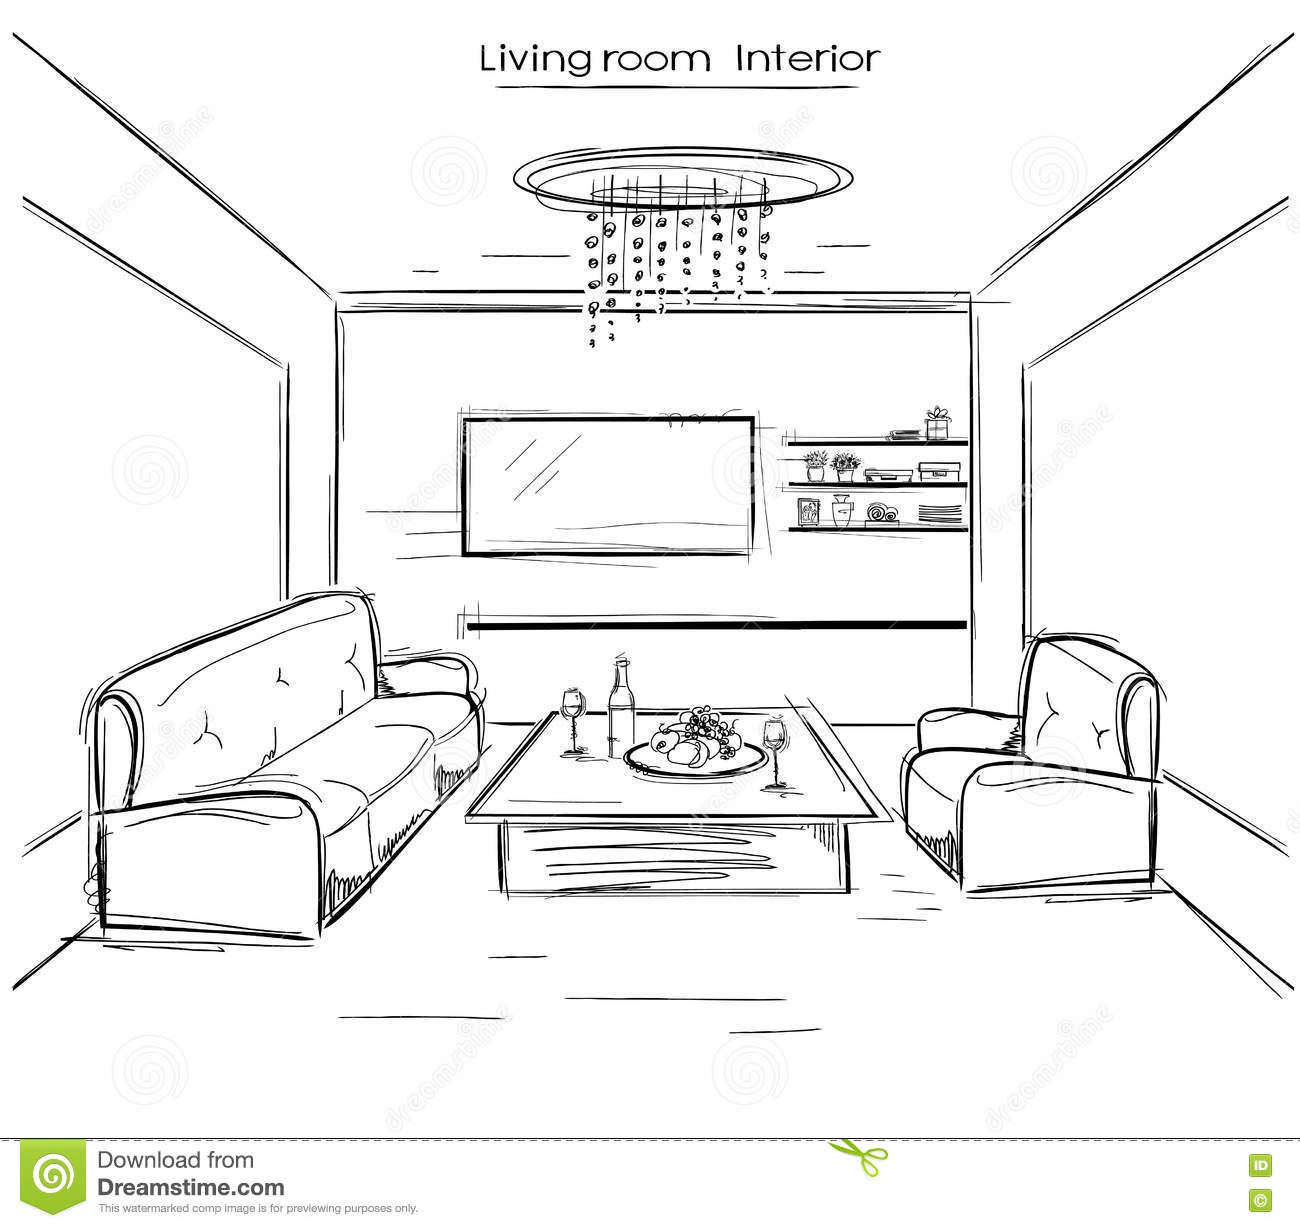 Xfig Line Drawing : Living room black and white clipart conceptstructuresllc